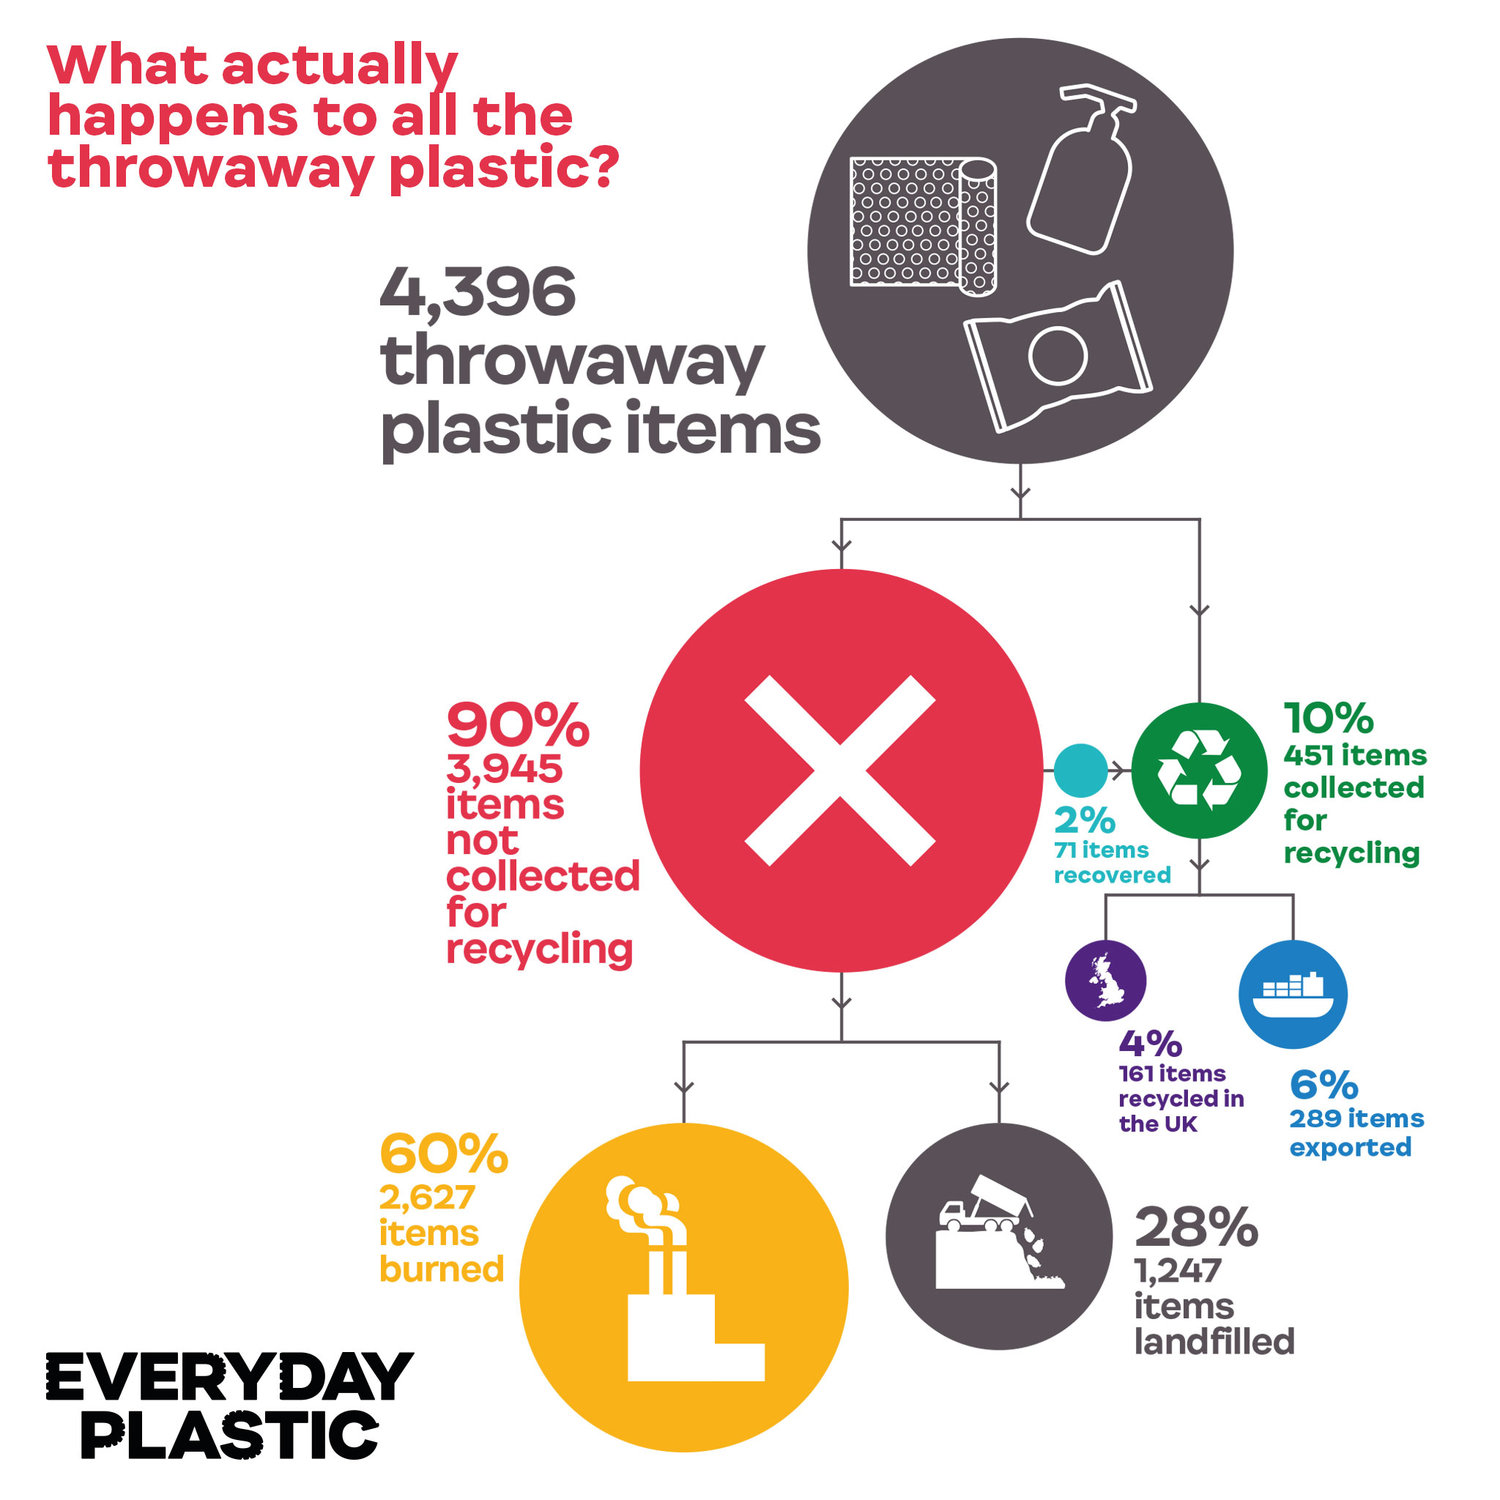 everyday-plastic-leap-design-infographic-7.jpg